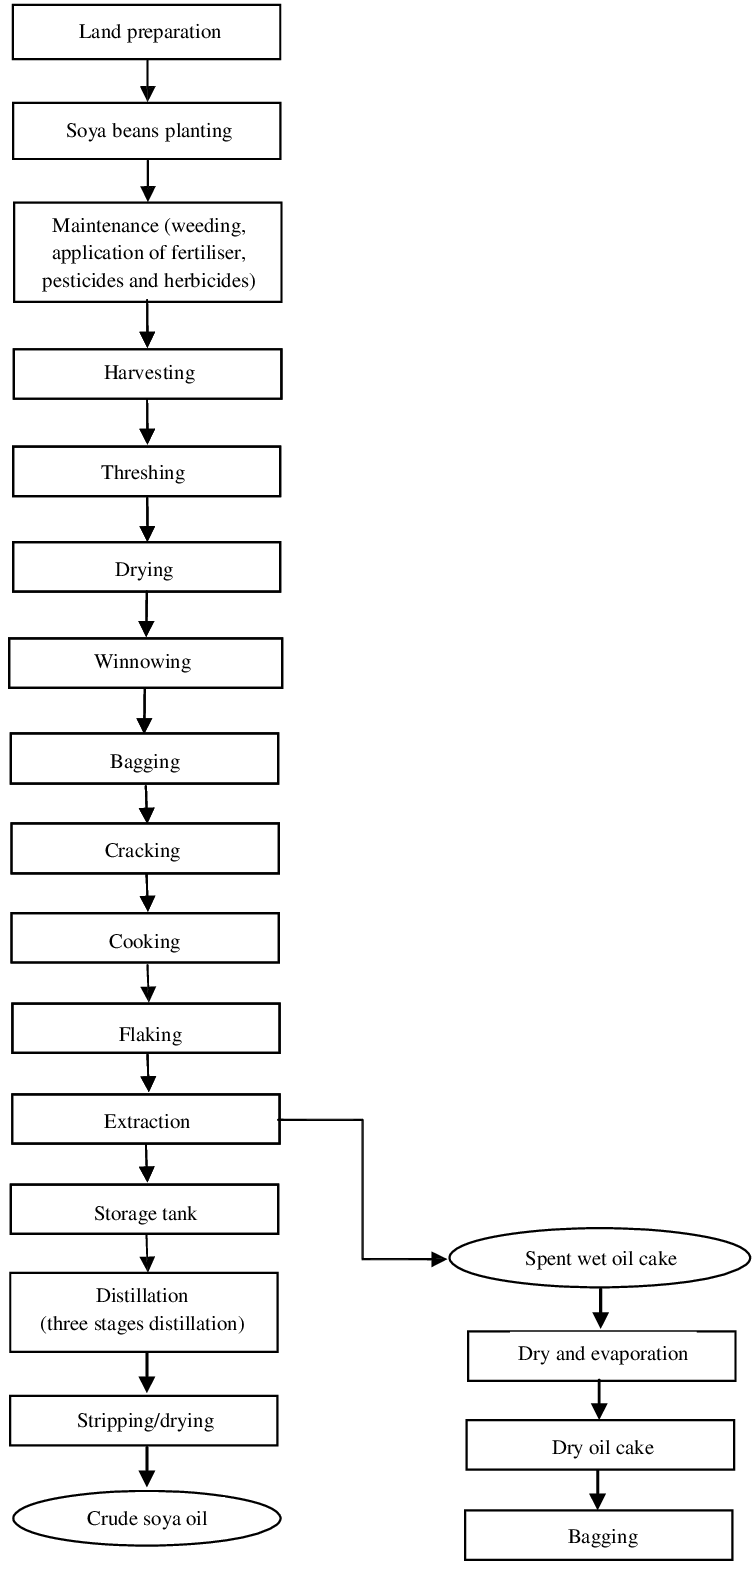 hight resolution of flow chart of soya beans production and processing system downloadflow chart of soya beans production and